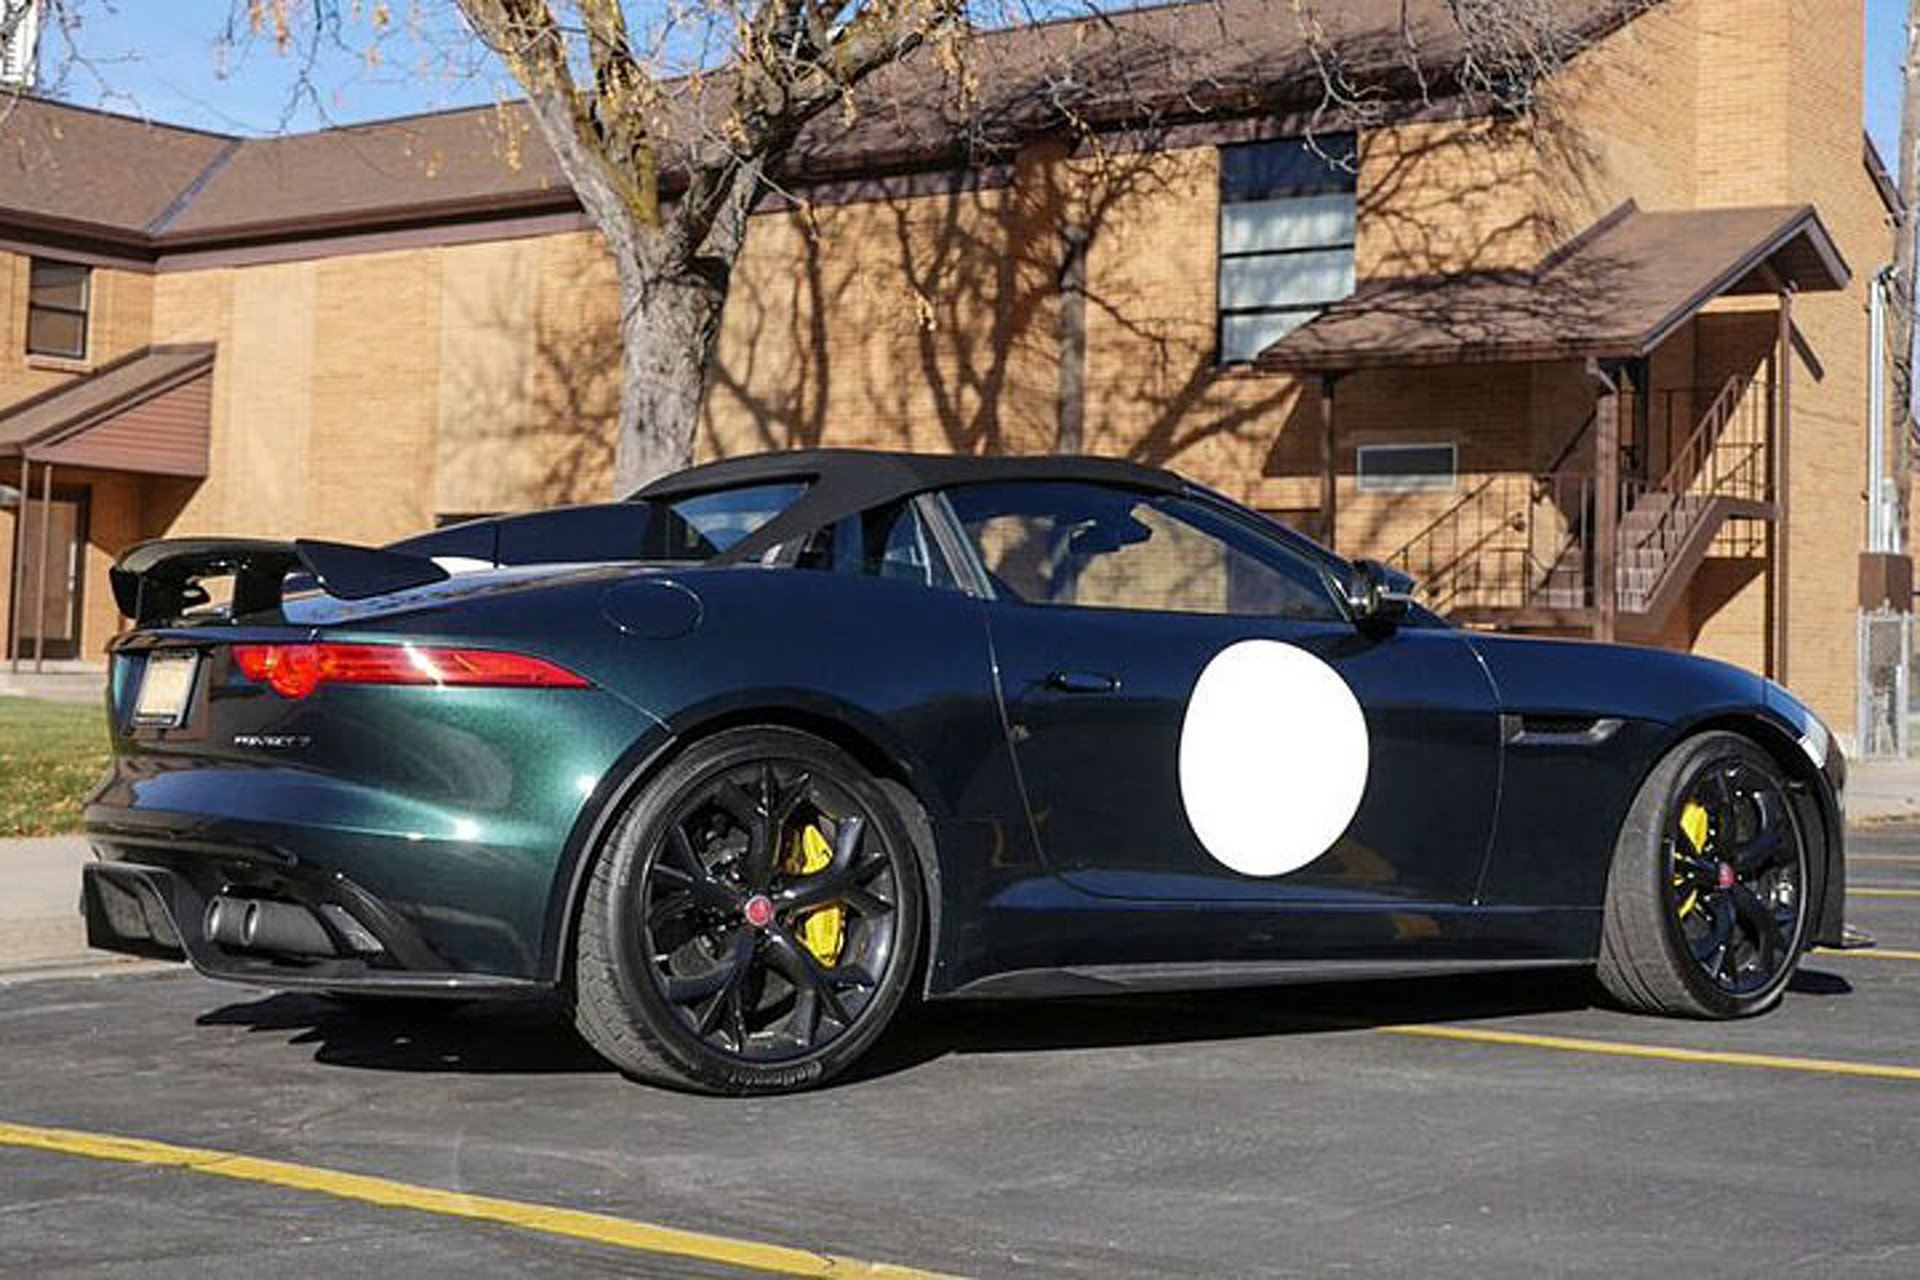 Rare 1-of-250 Jaguar F-Type Project 7 Roars onto eBay